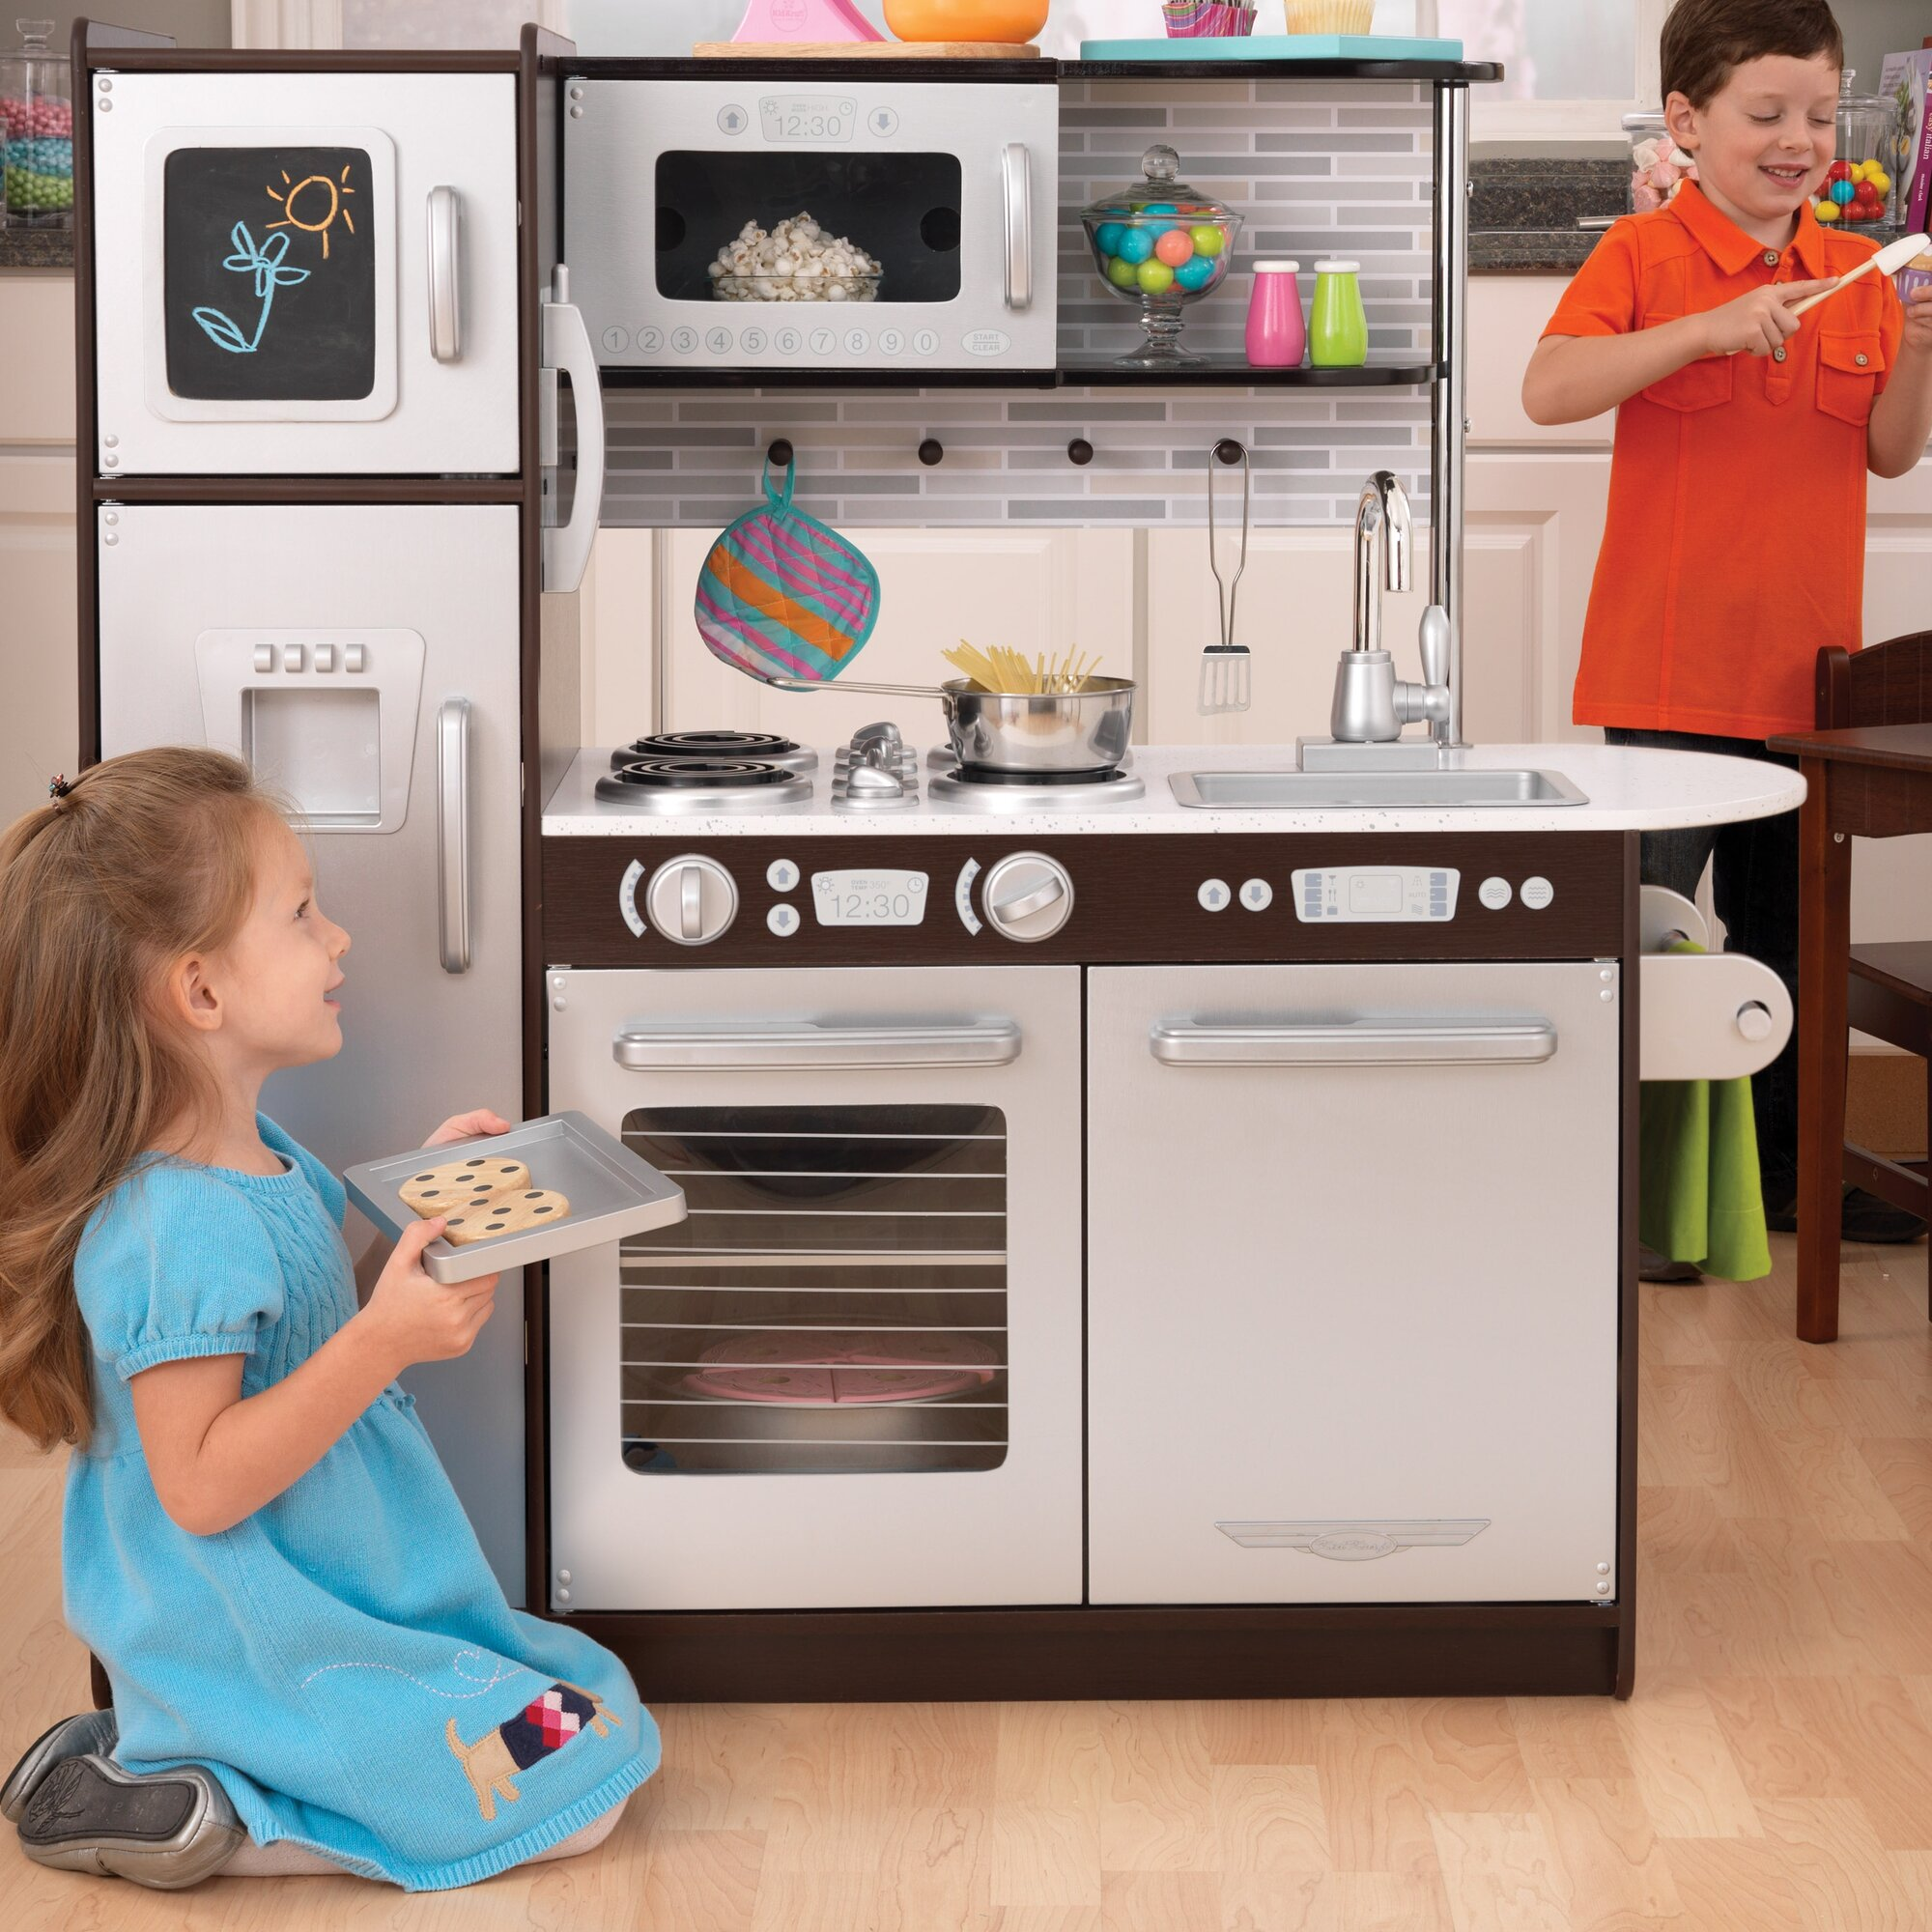 kidkraft uptown espresso kitchen refrigerator toddler kids pretend play set wood ebay. Black Bedroom Furniture Sets. Home Design Ideas